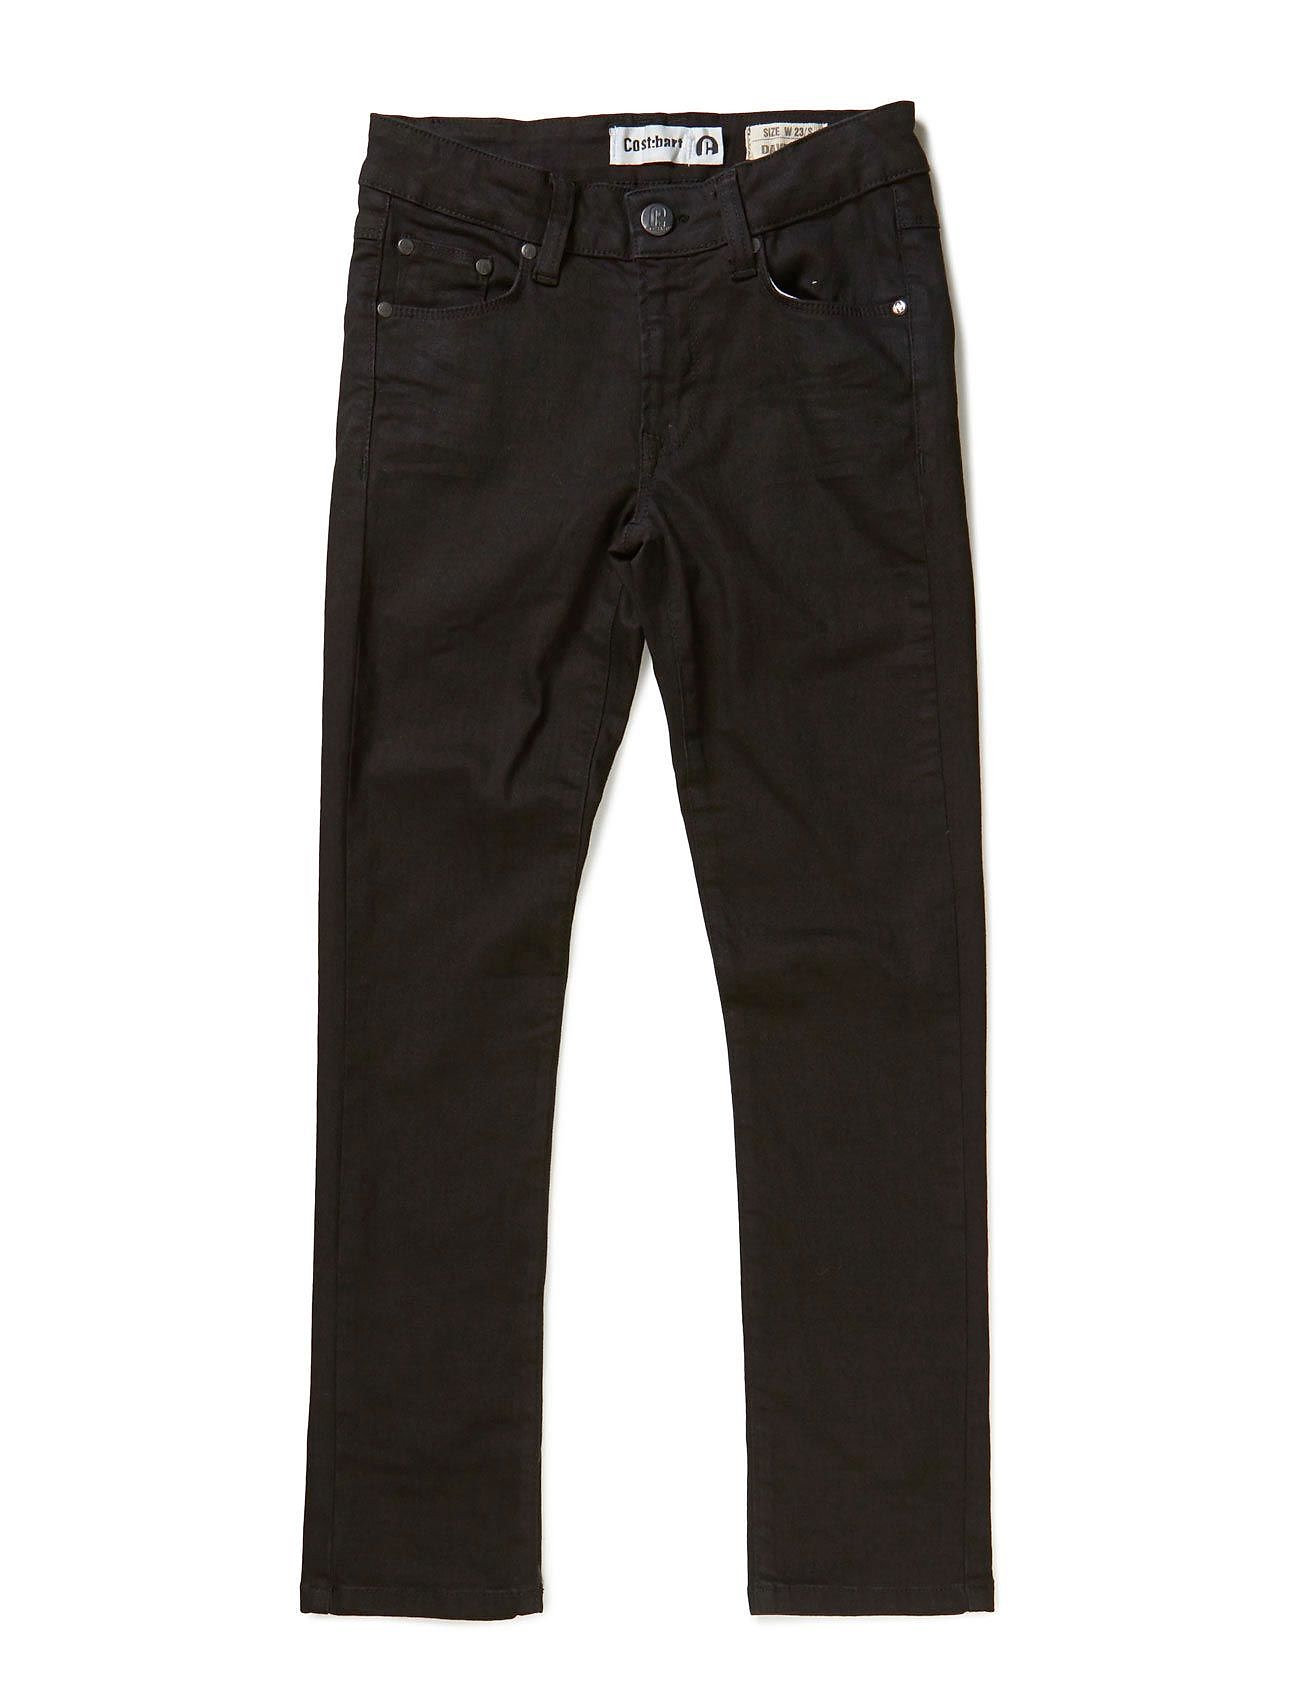 Costbart Dave Jeans - 999-black